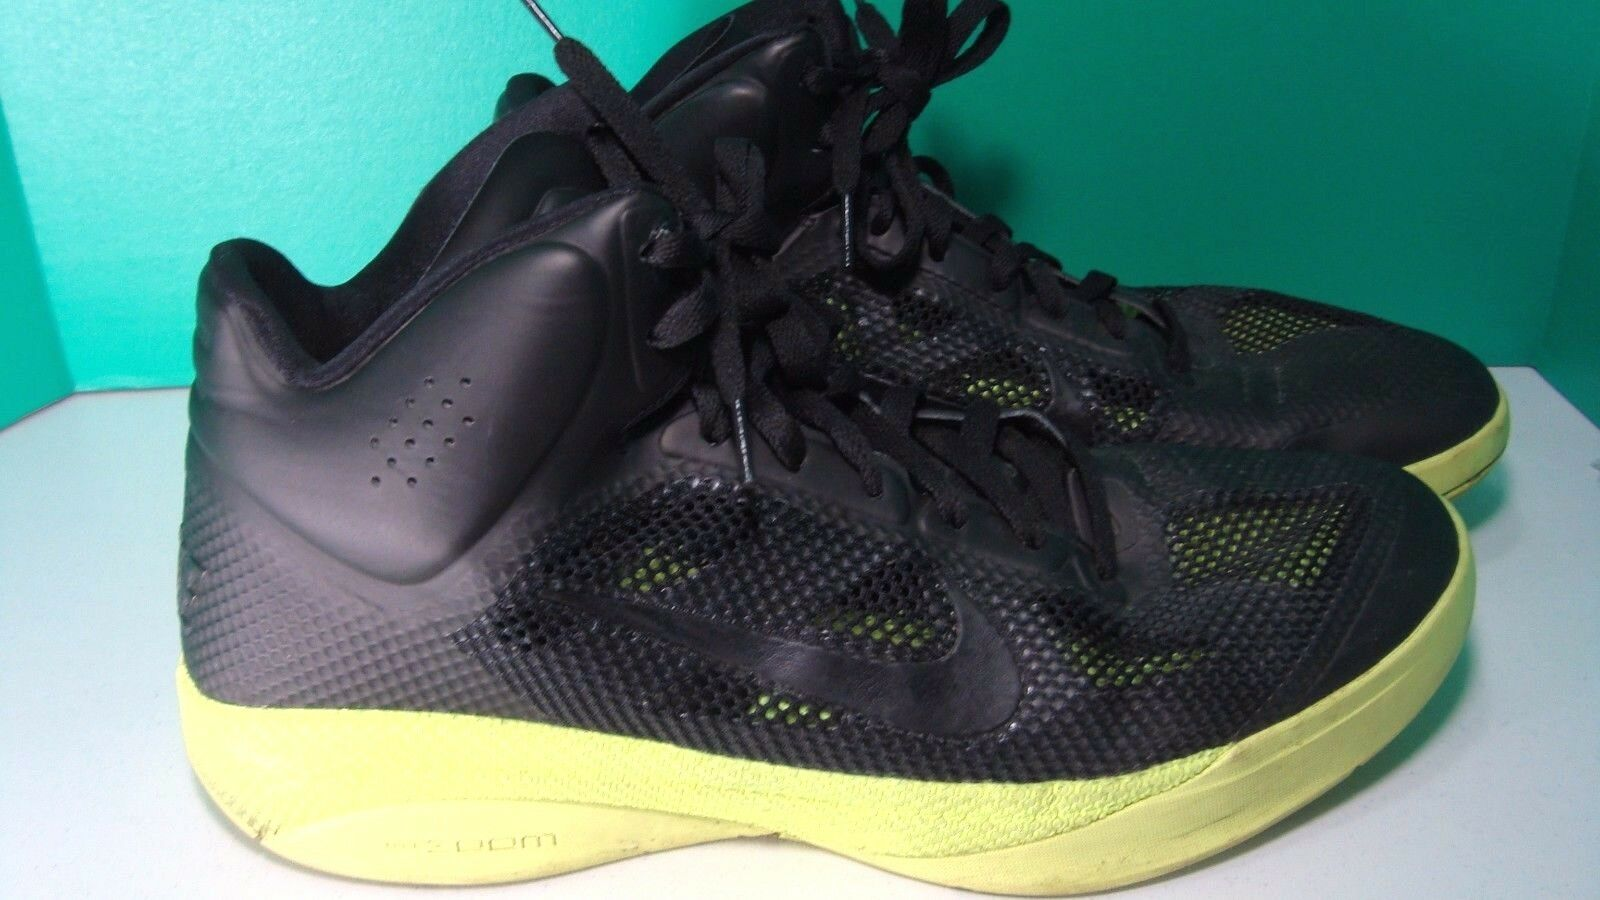 cca7eb8a2879 Nike Zoom Hyperfuse Black Volt Men s Size 14 Max Rise 407622-006 for ...